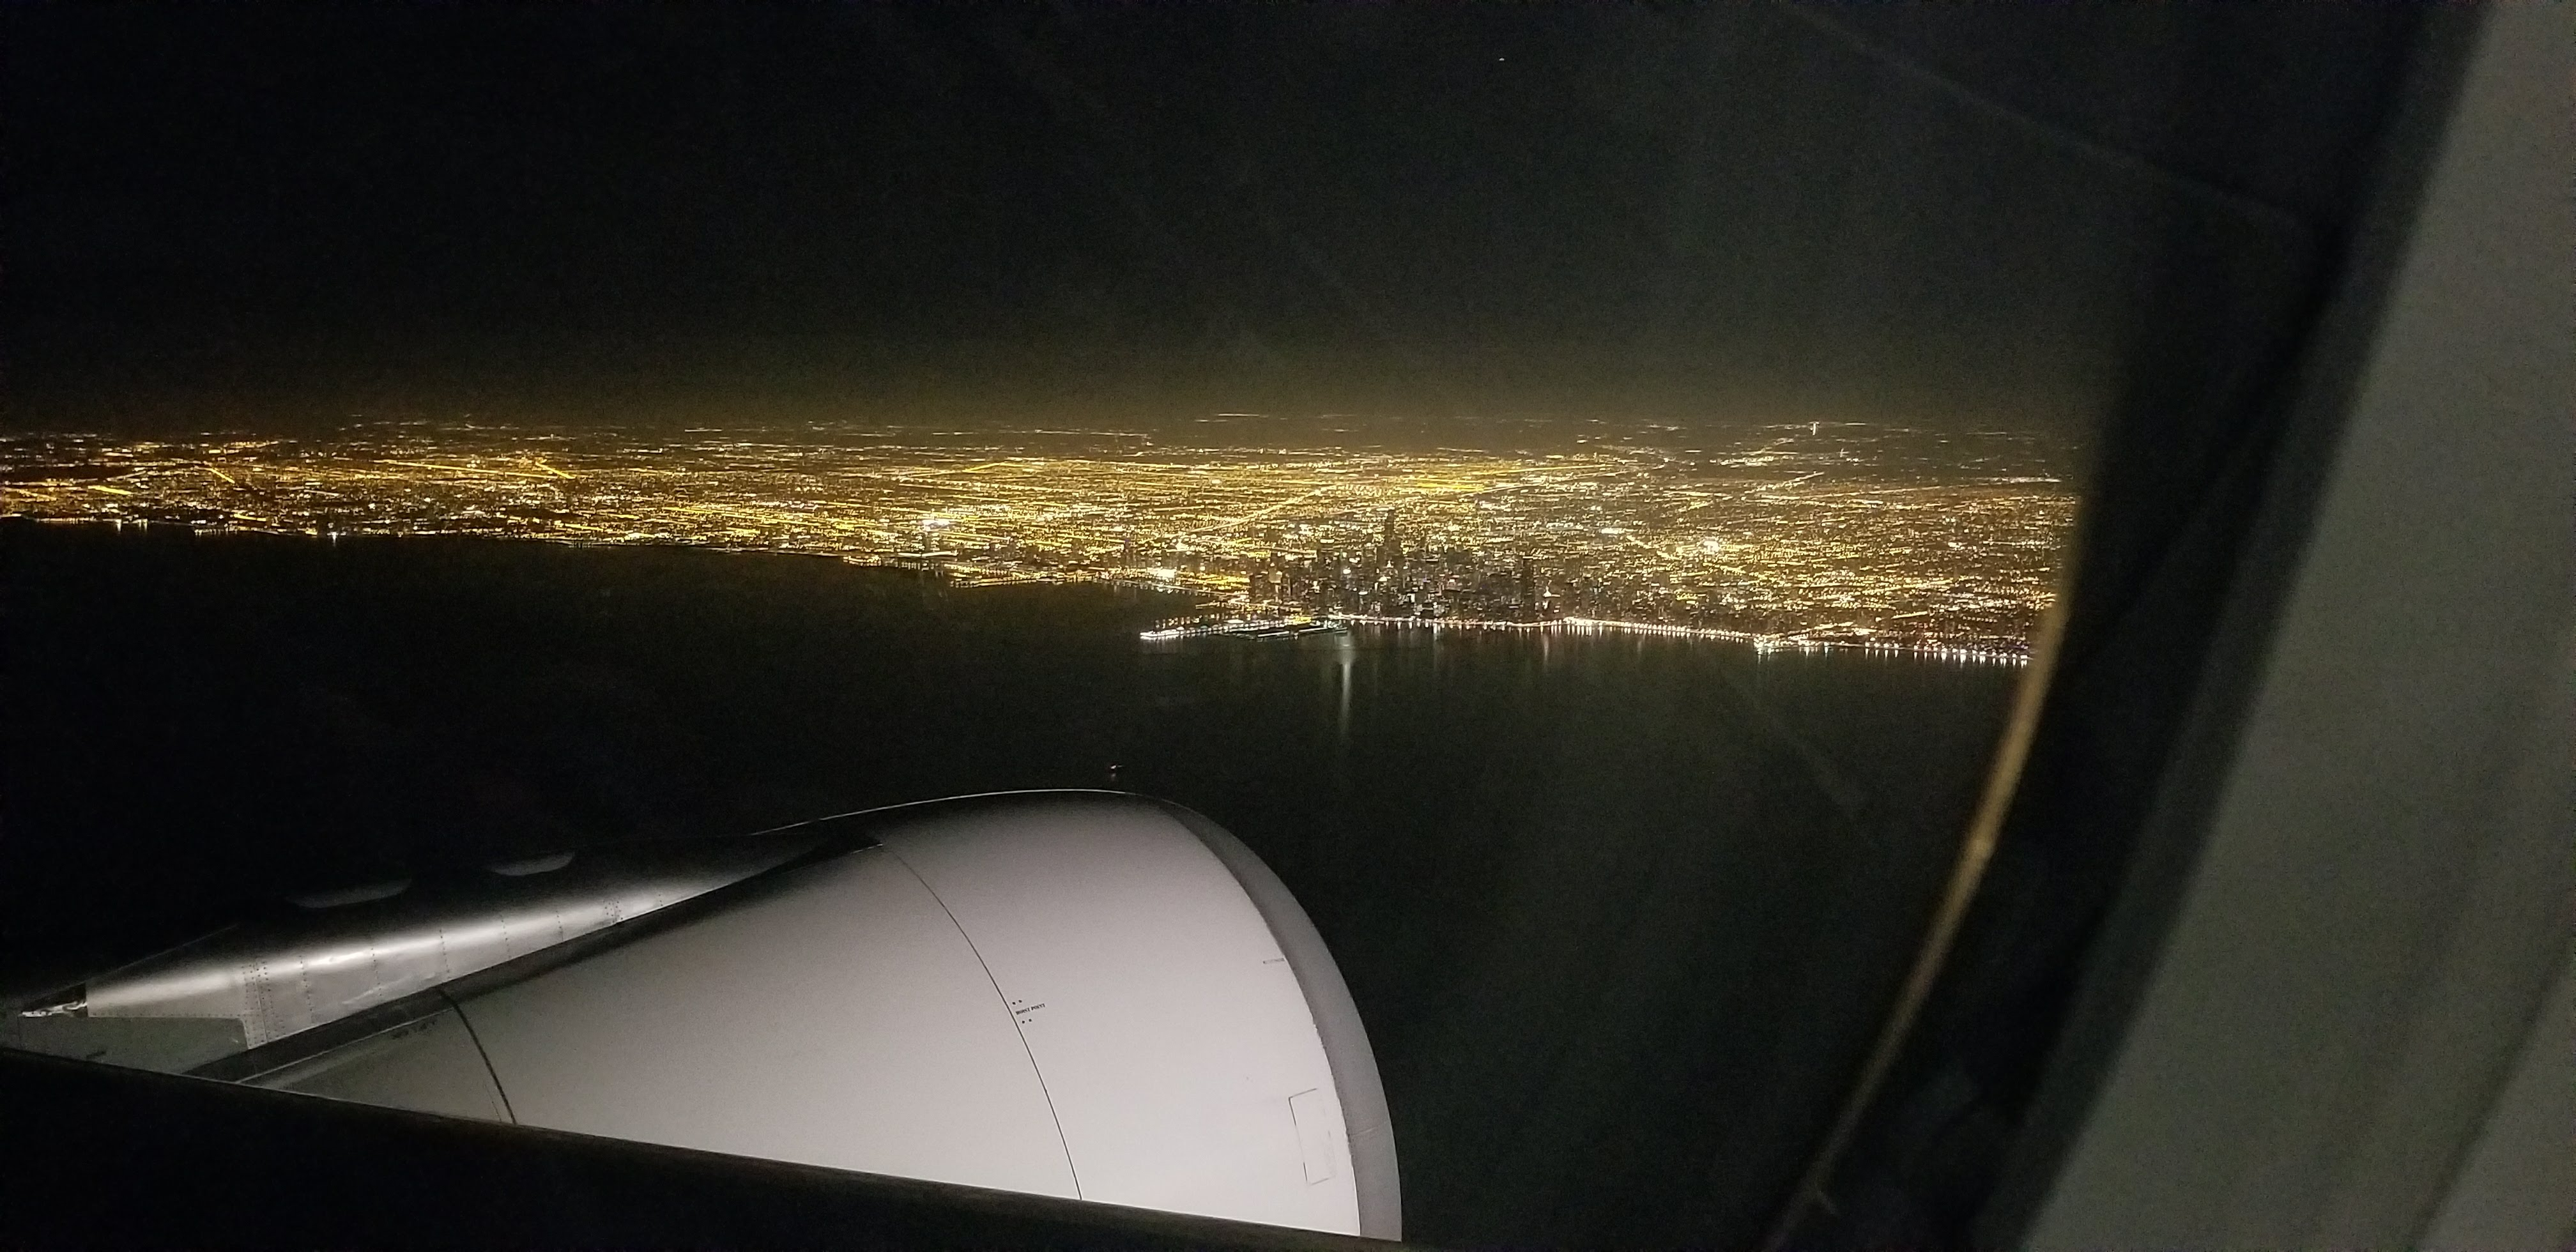 CAPAStudyAbroad_London_Fall2017_From Thaddeus Kaszuba - Downtown Chicago Skyline as I prepare to land in the US after 5 Months.jpg